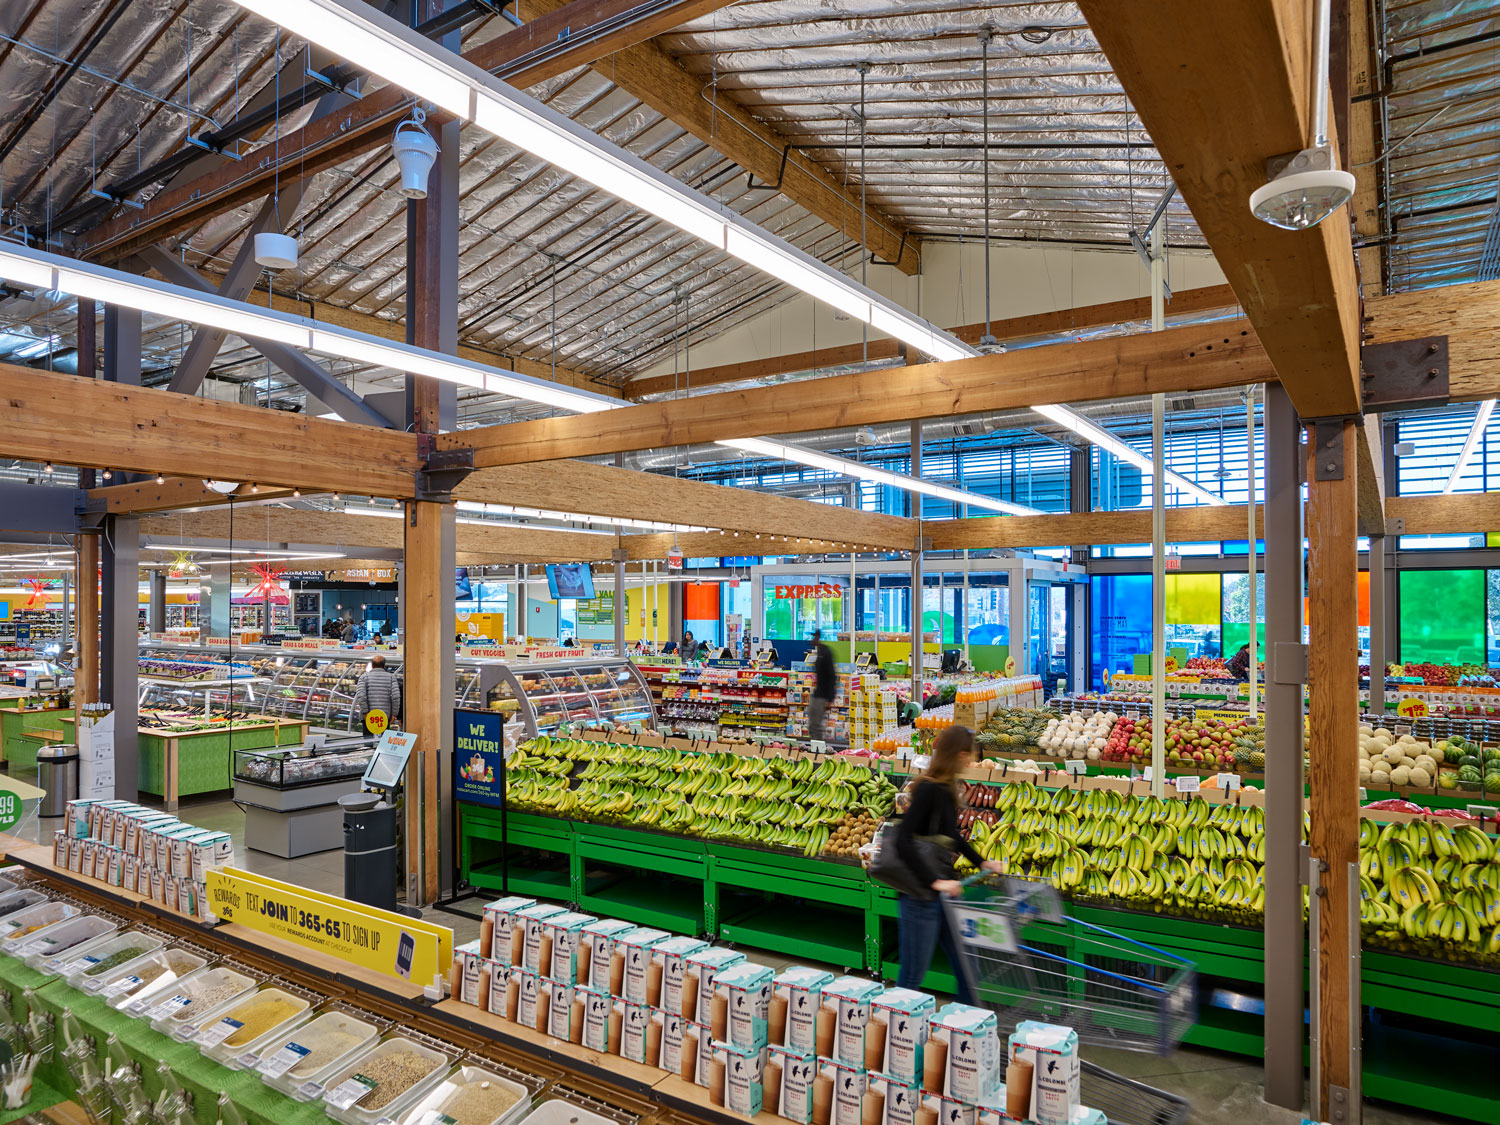 DFH-Architects-Pico-Market-Commercial-04.jpg